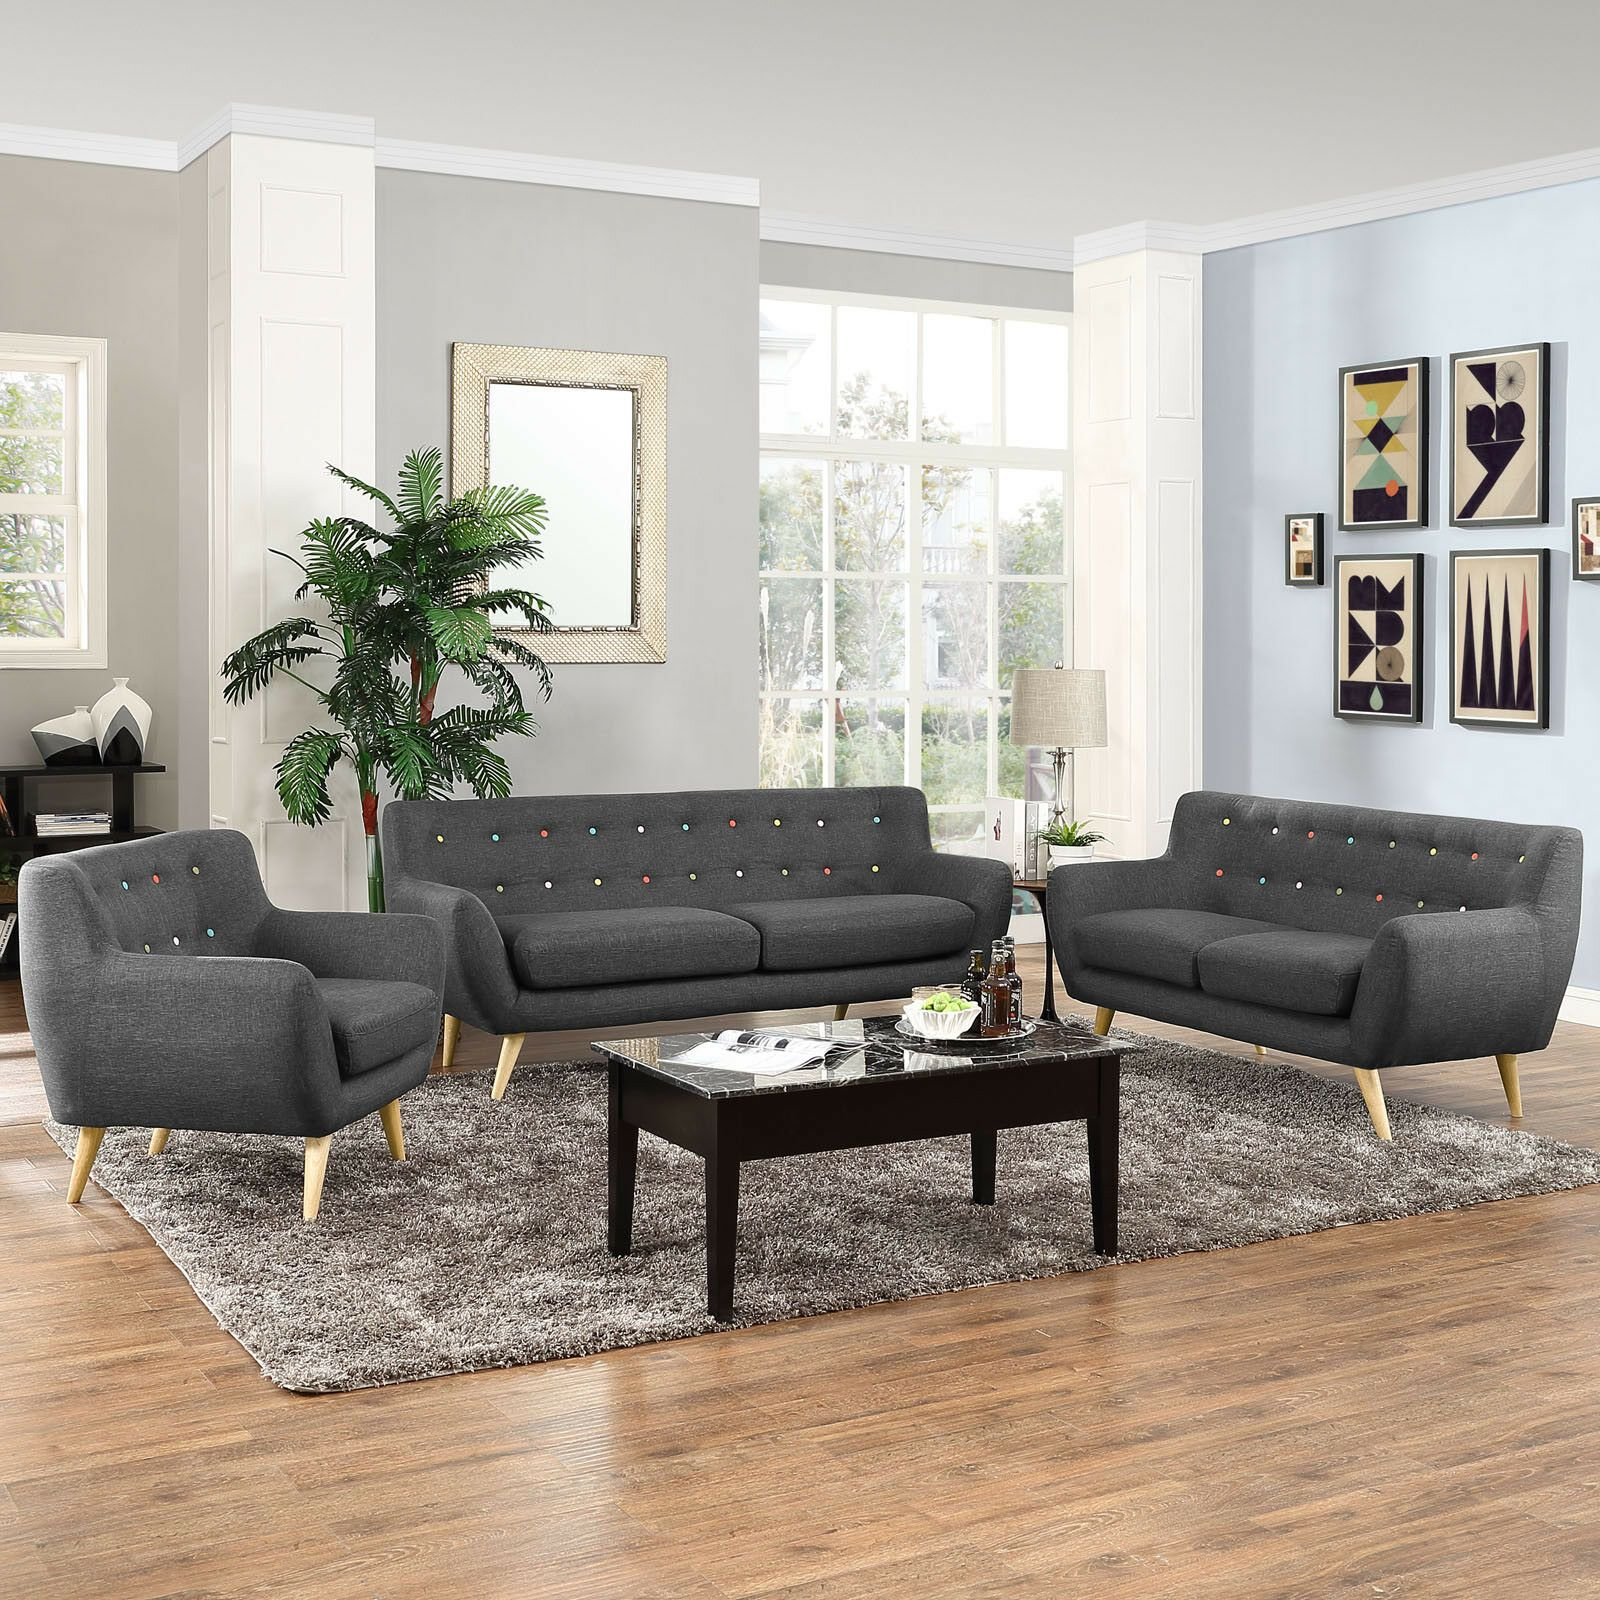 Modway Remark 3 Piece Living Room Set In Gray 889654018025 Ebay In 2020 3 Piece Living Room Set Living Room Sets Living Room Trends